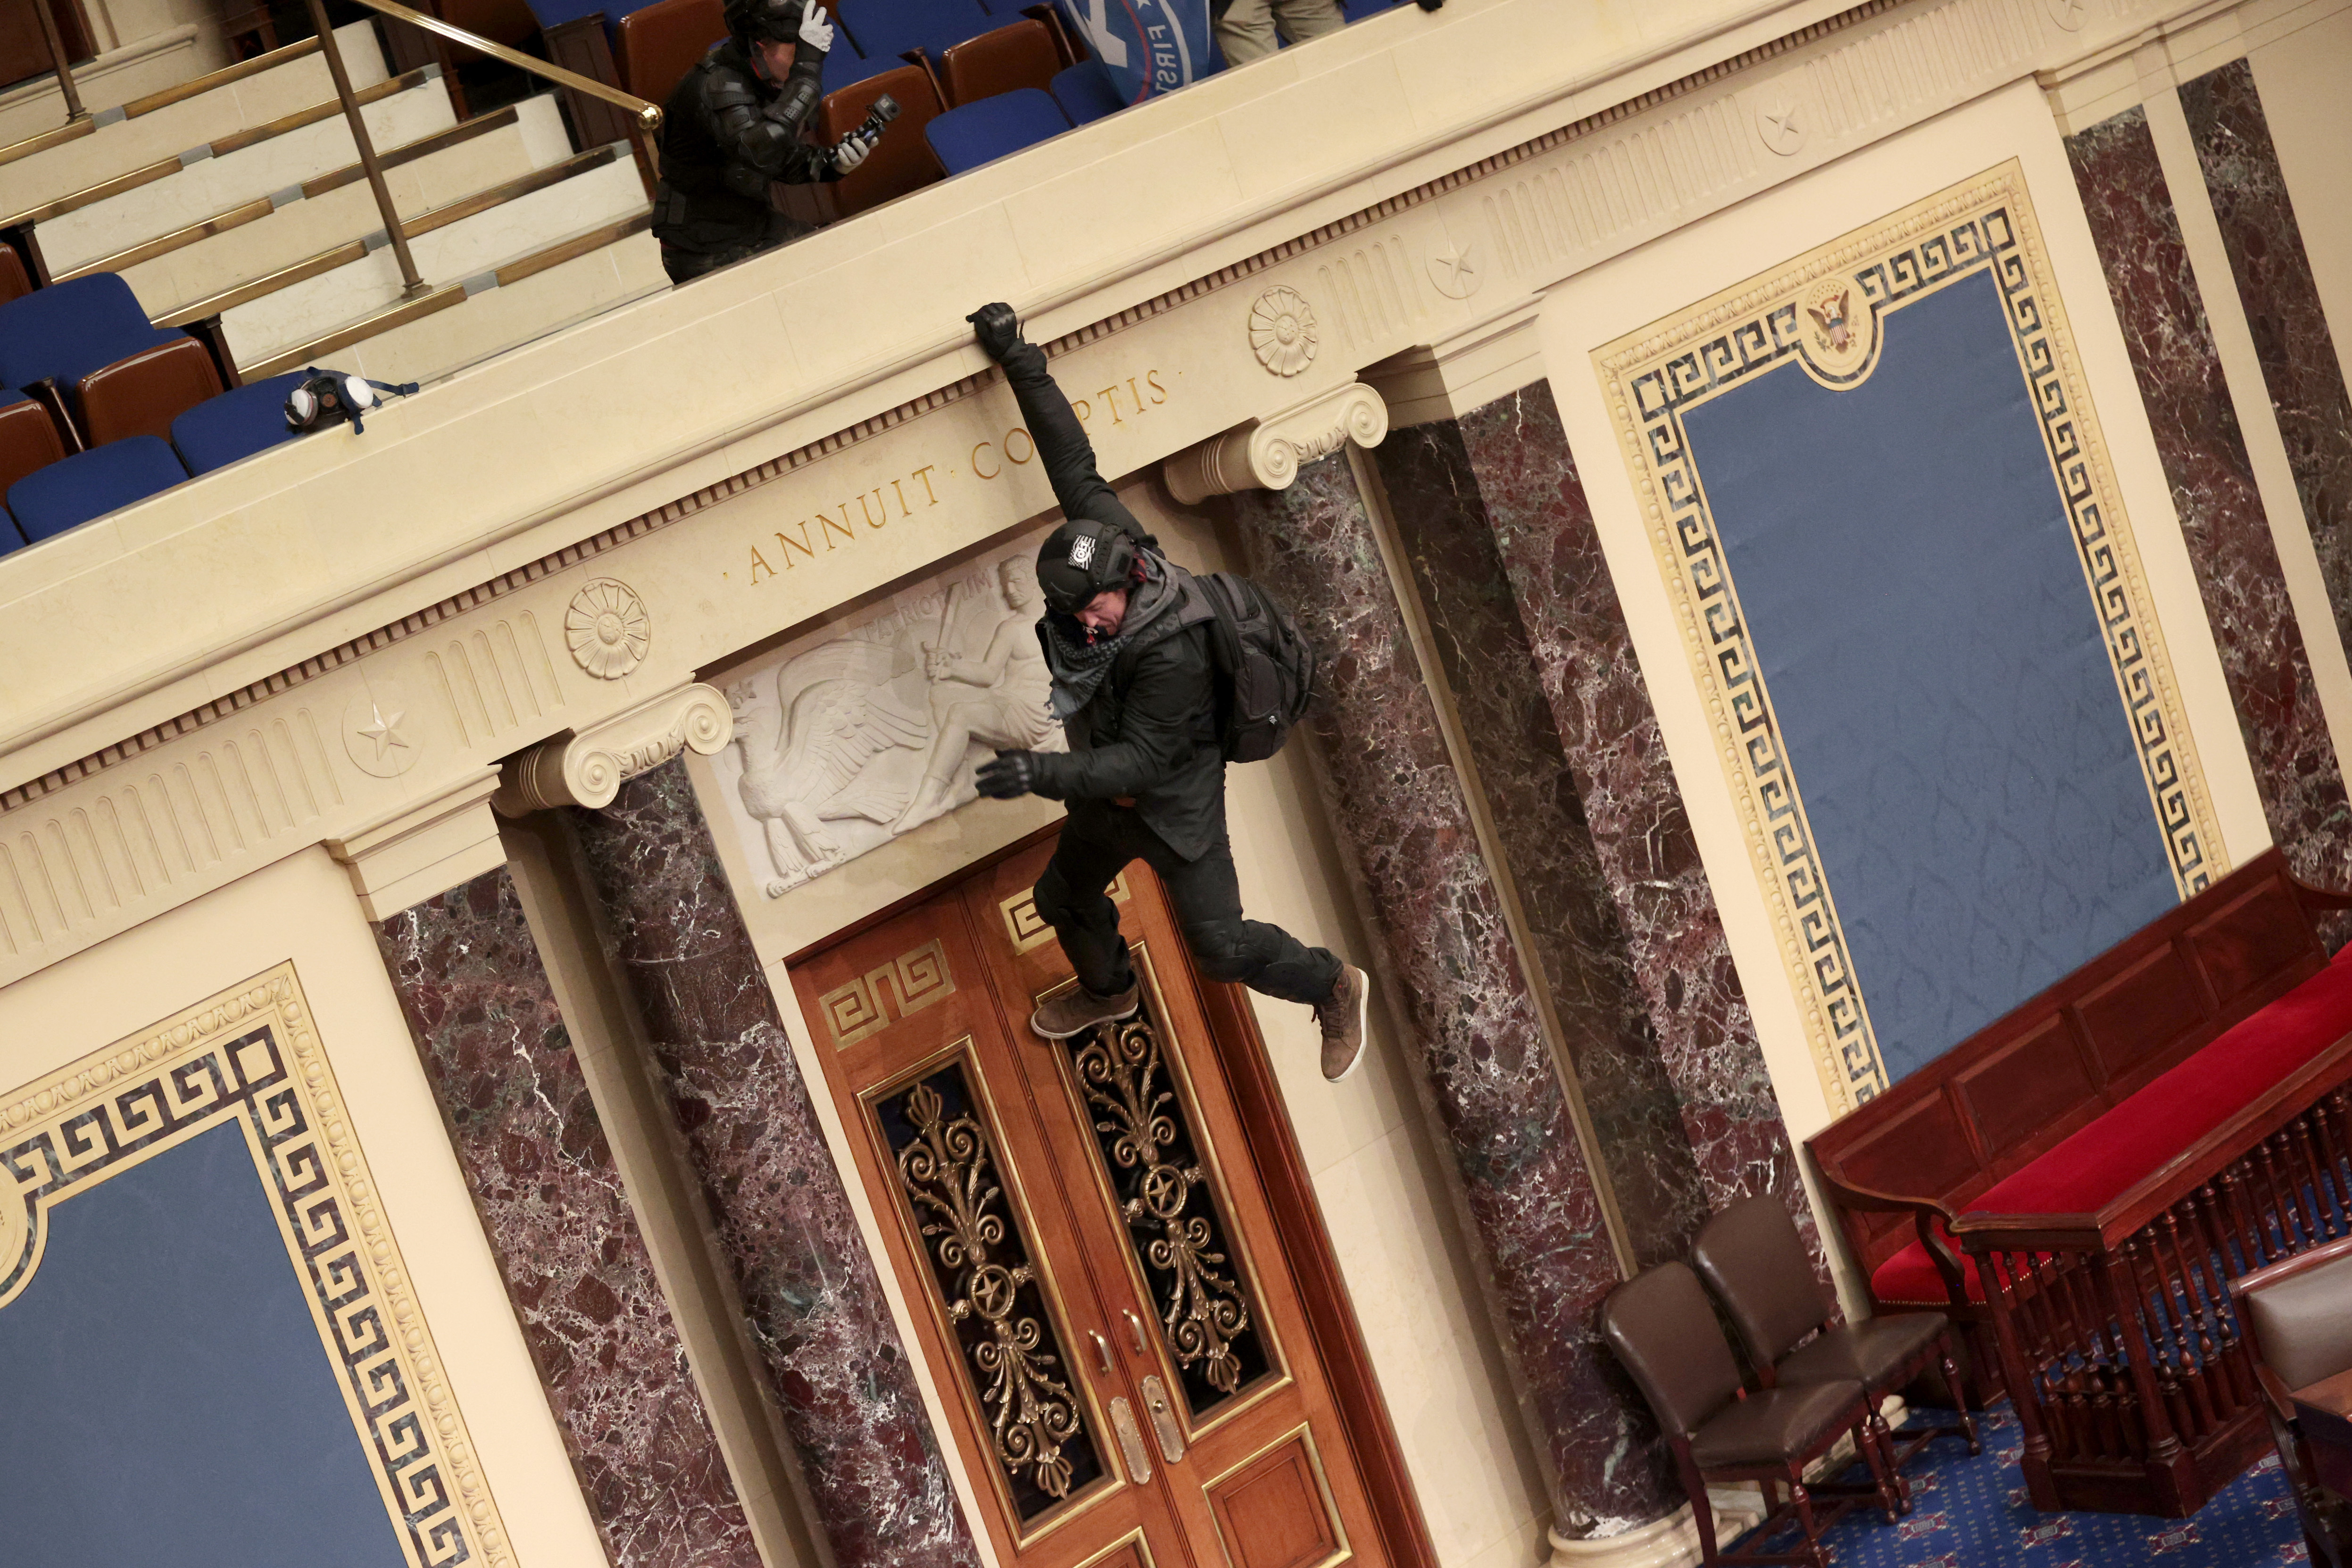 This image, taken Jan. 6, 2021, shows a man hanging during a riot at the U.S. Capitol.